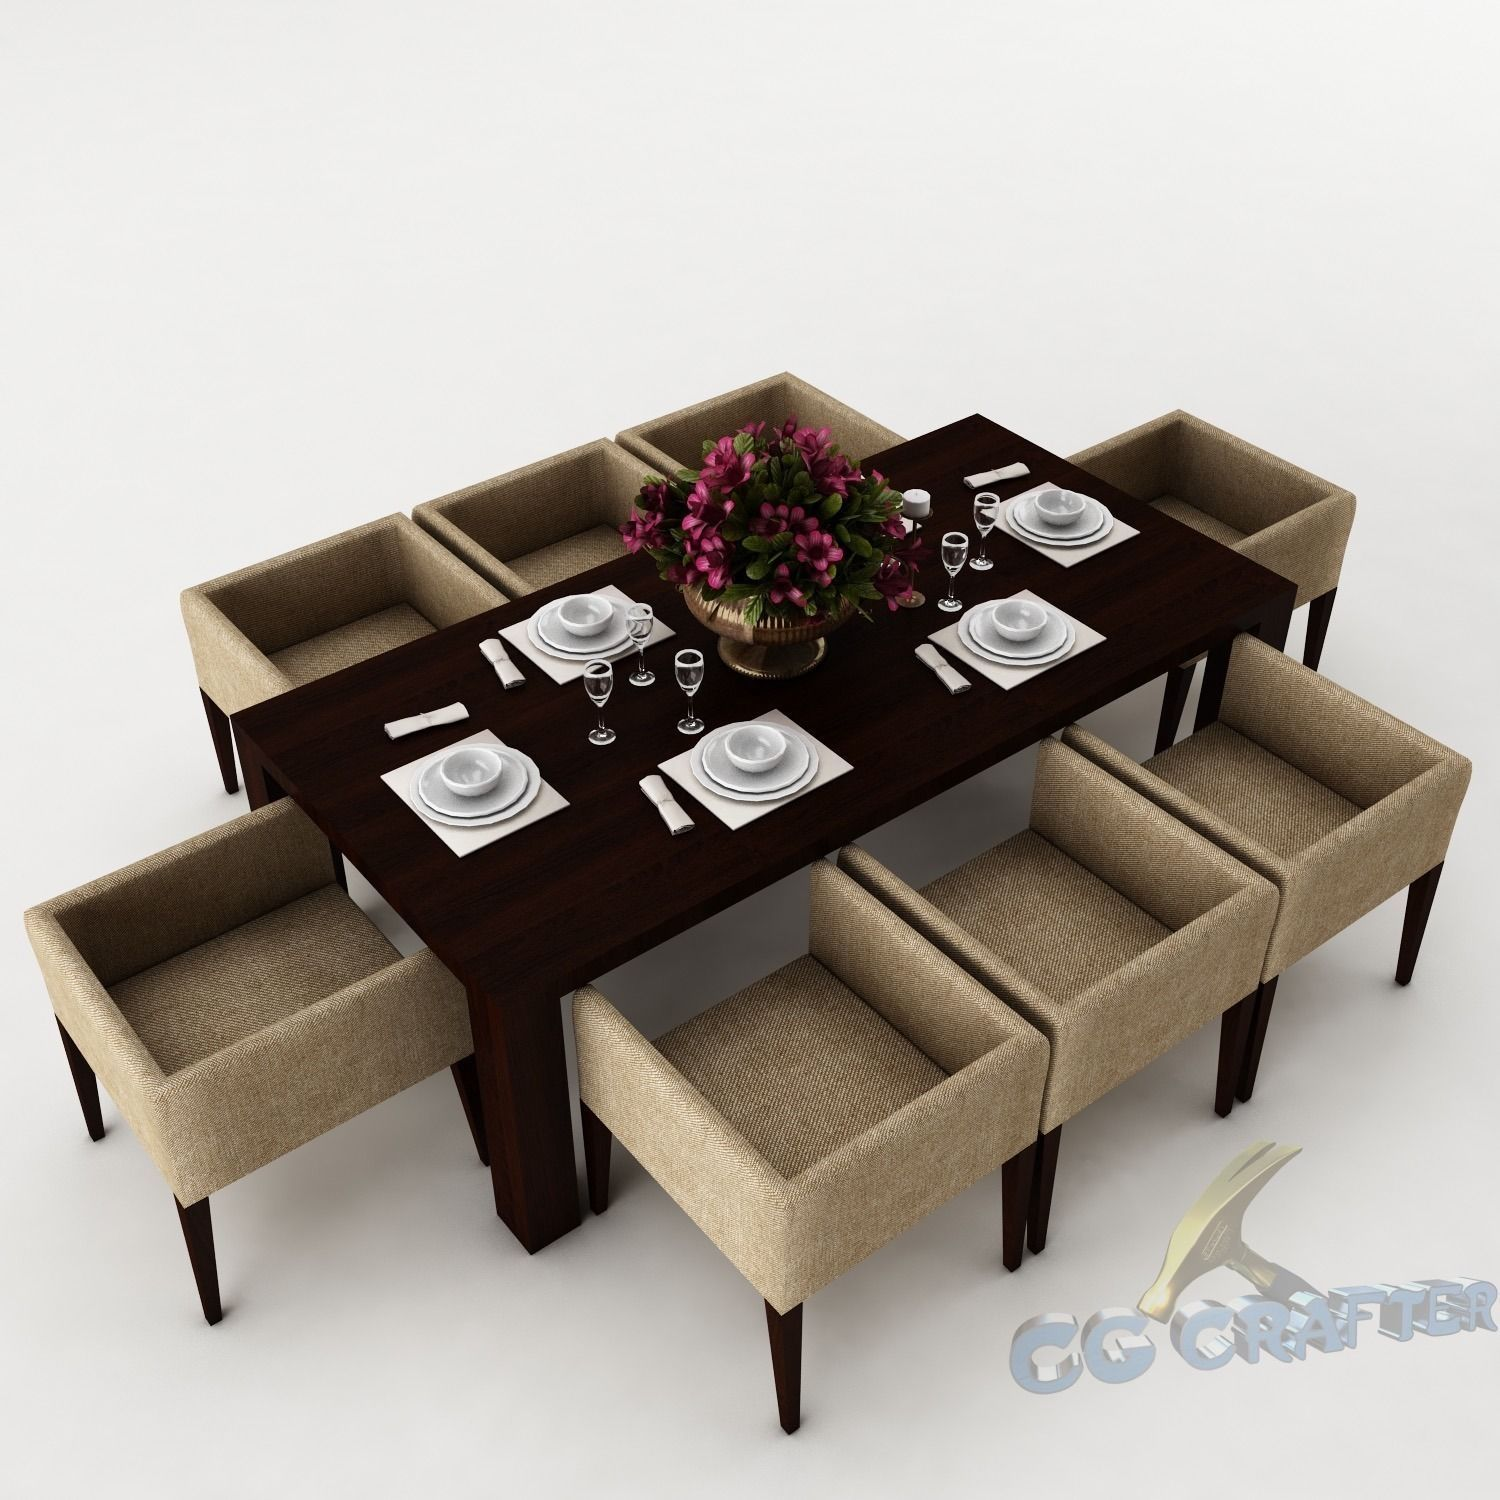 Dining table set 43 3D Model max obj 3ds fbx  : diningtableset433dmodel3dsfbxobjmax4db96af6 c9ab 4be5 a74e 9ea7c8dca04a from cgtrader.com size 1500 x 1500 jpeg 220kB